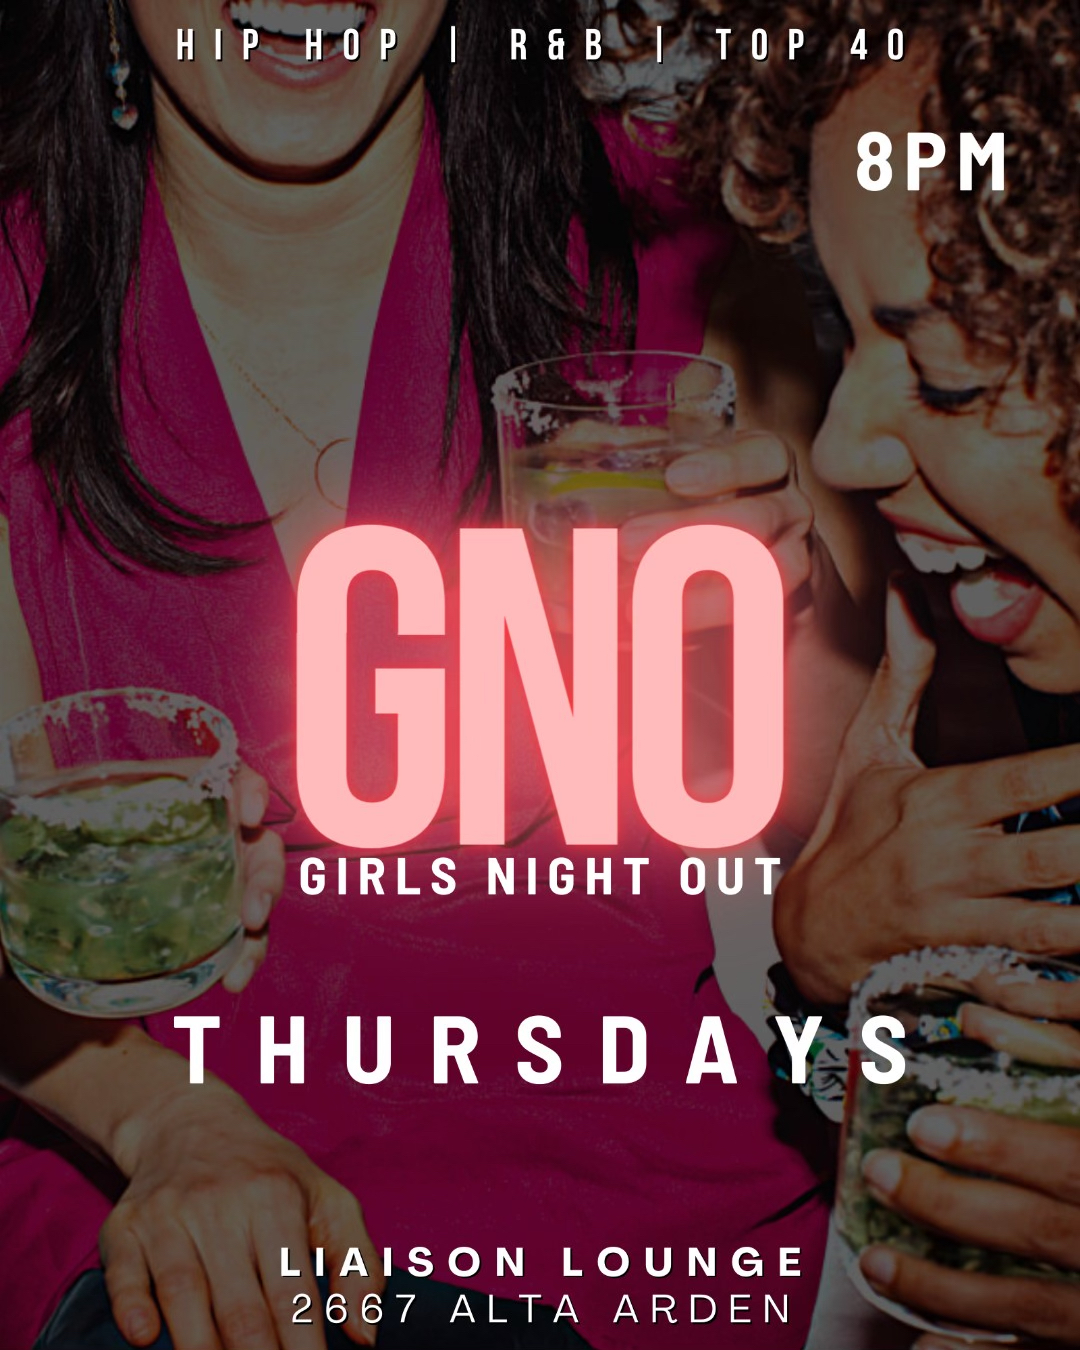 Girls Night Out at Liaison Lounge